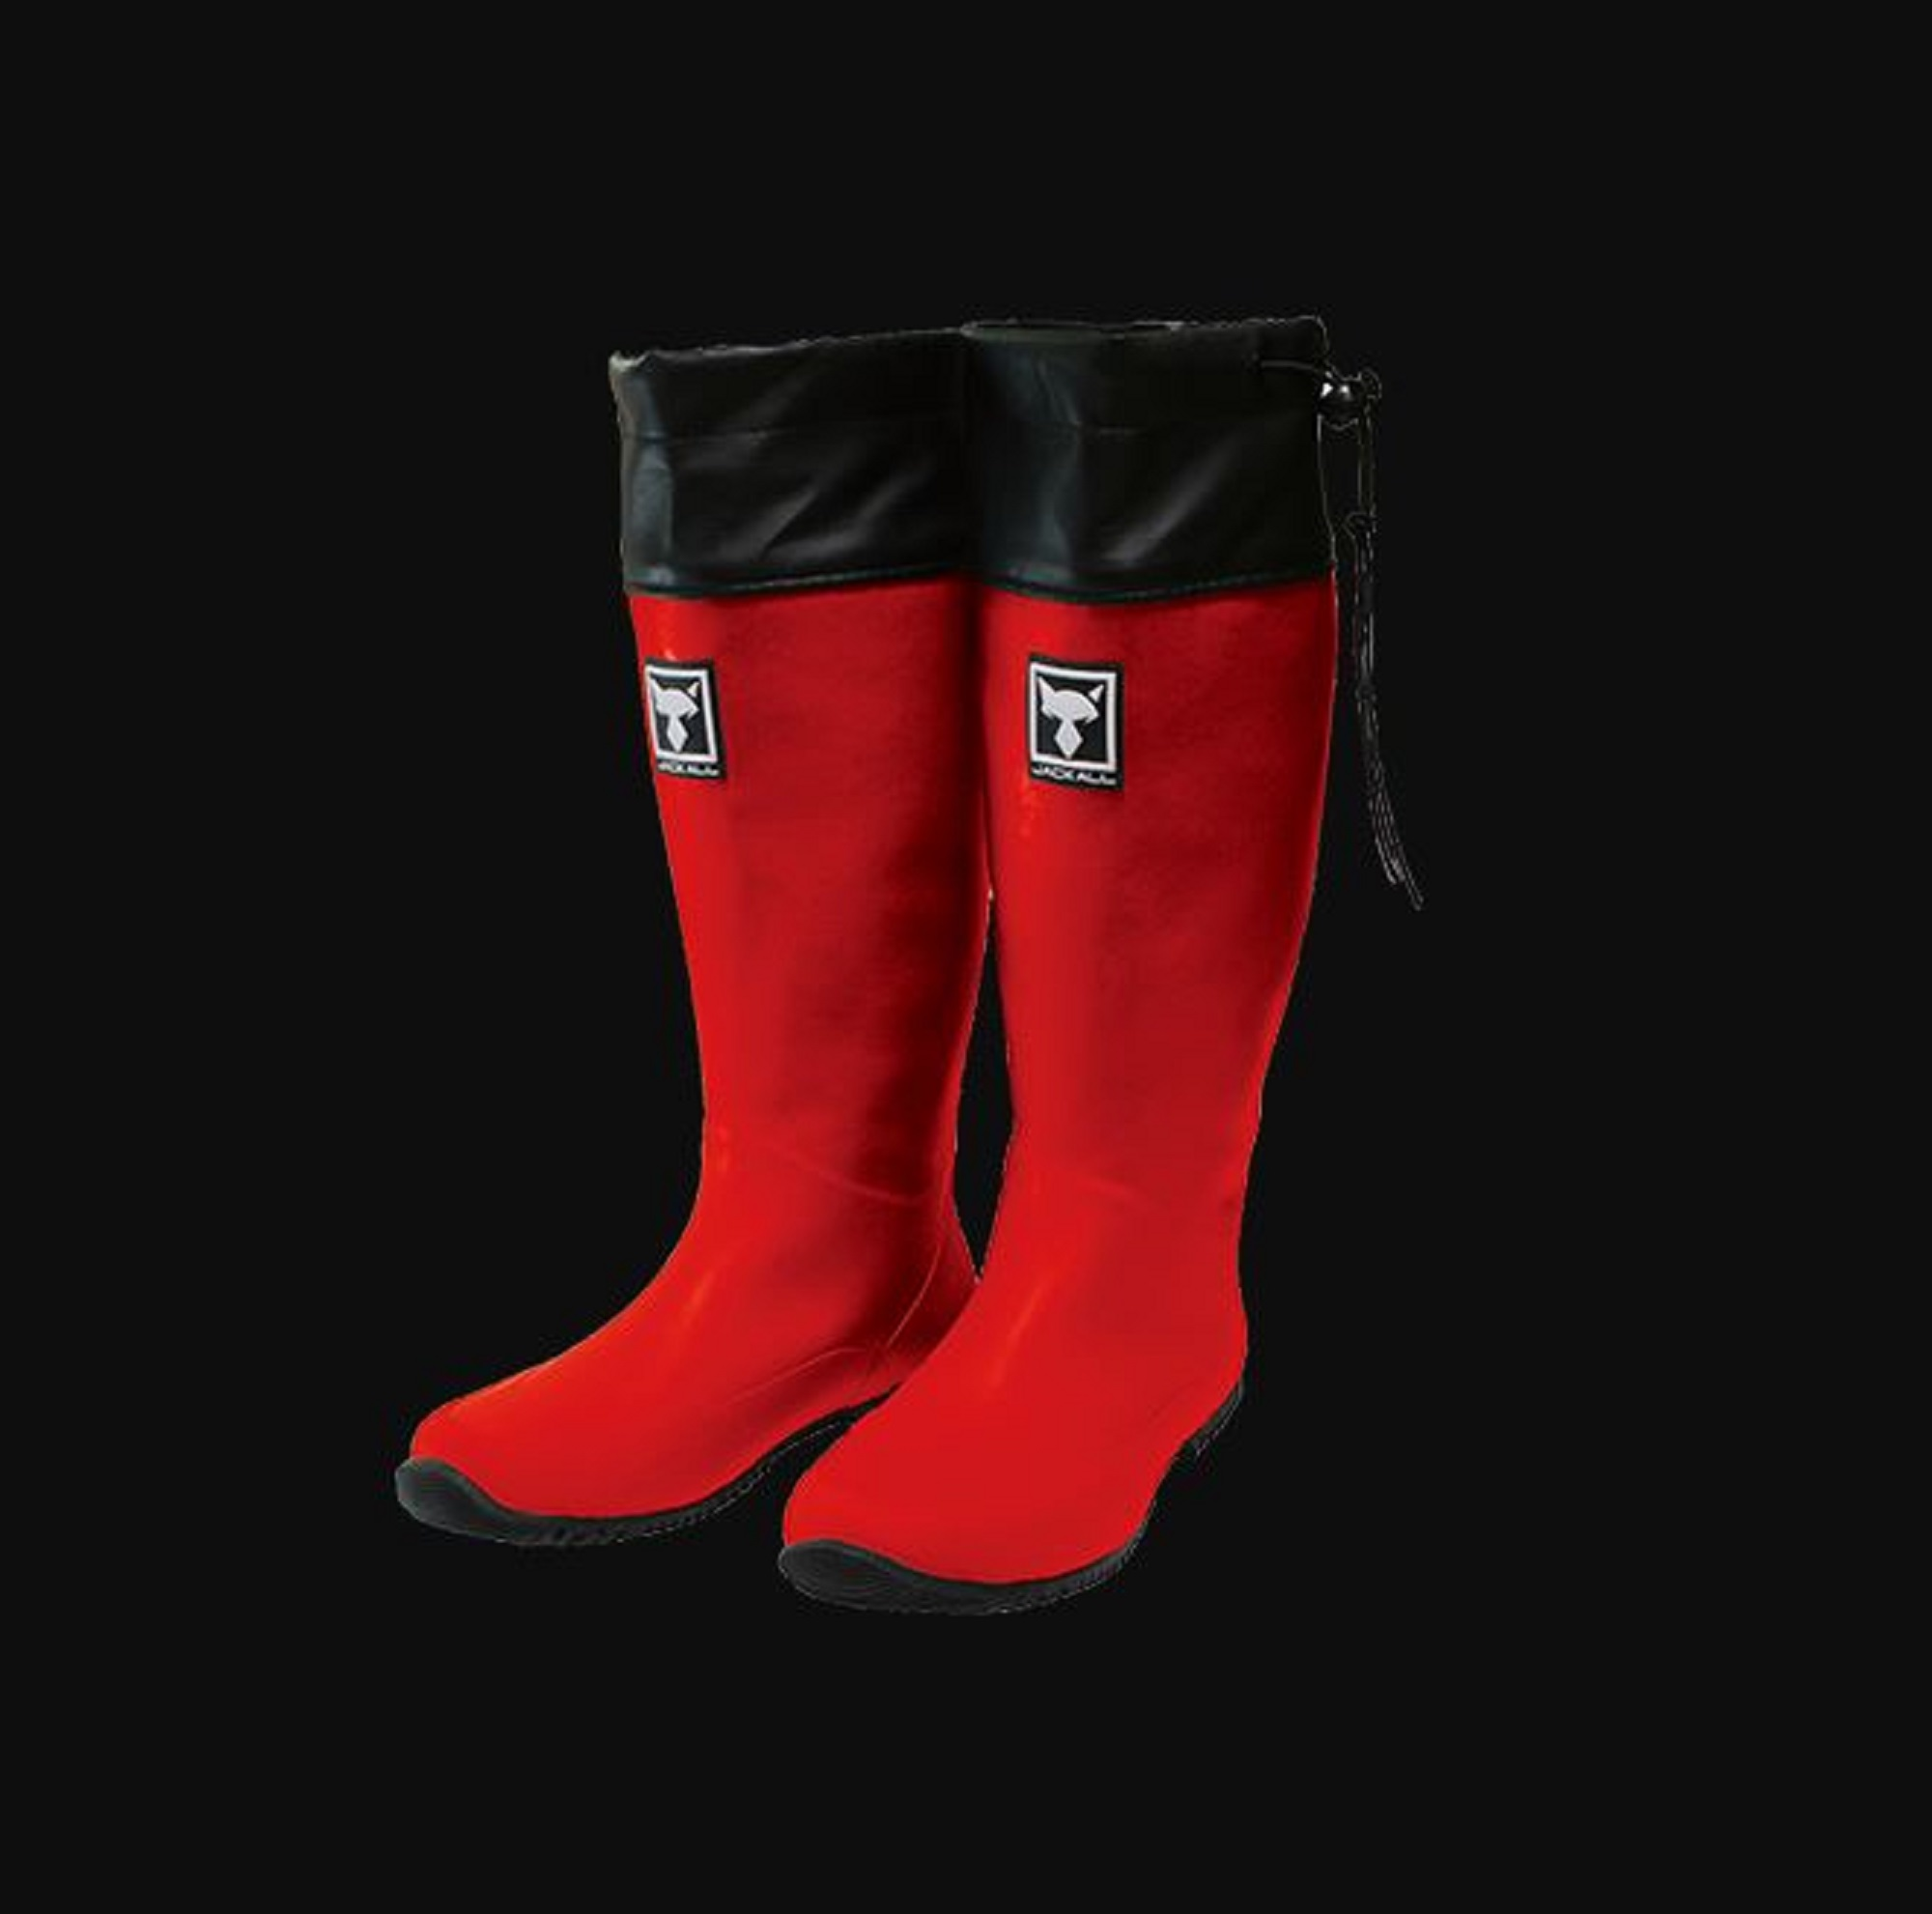 Jackall Packable Boots Foldable Red Size XXL 280-285 (2248)